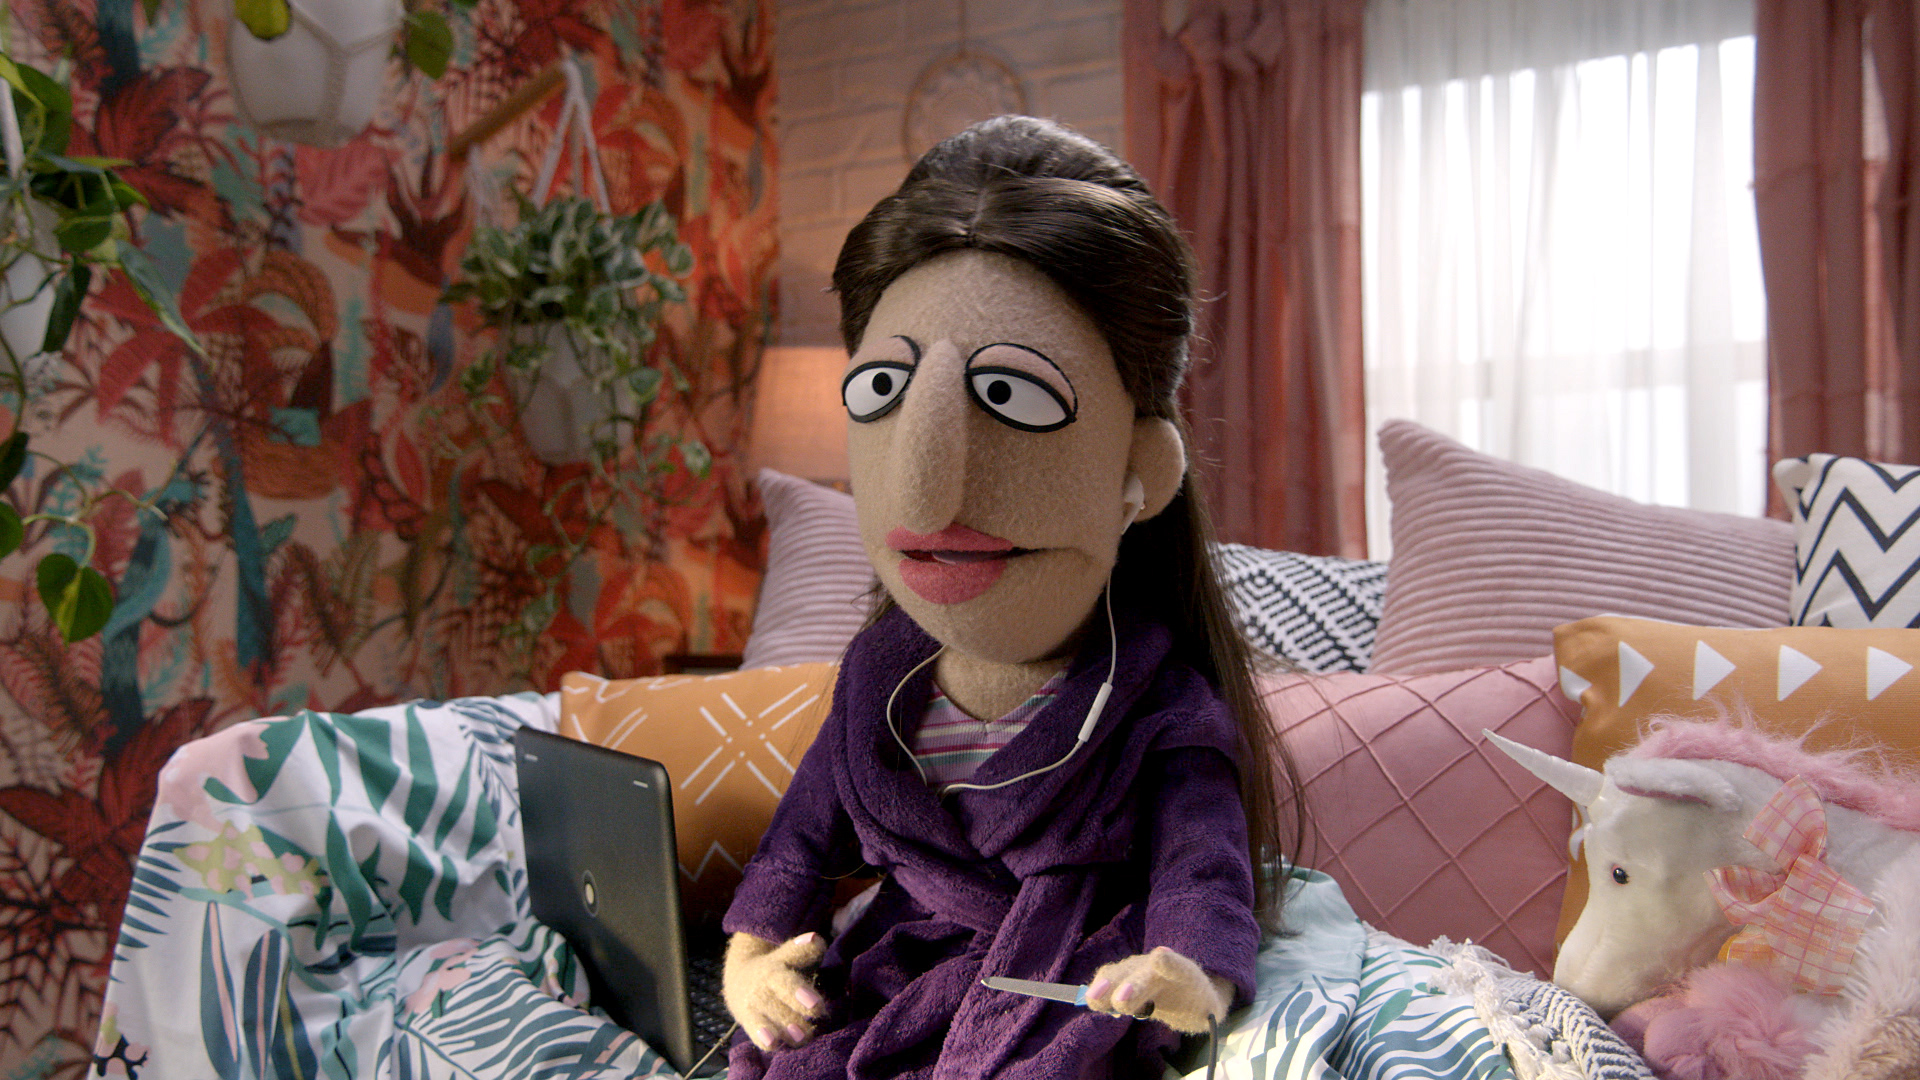 Sarah Silverman as a puppet on Comedy Central's Crank Yankers